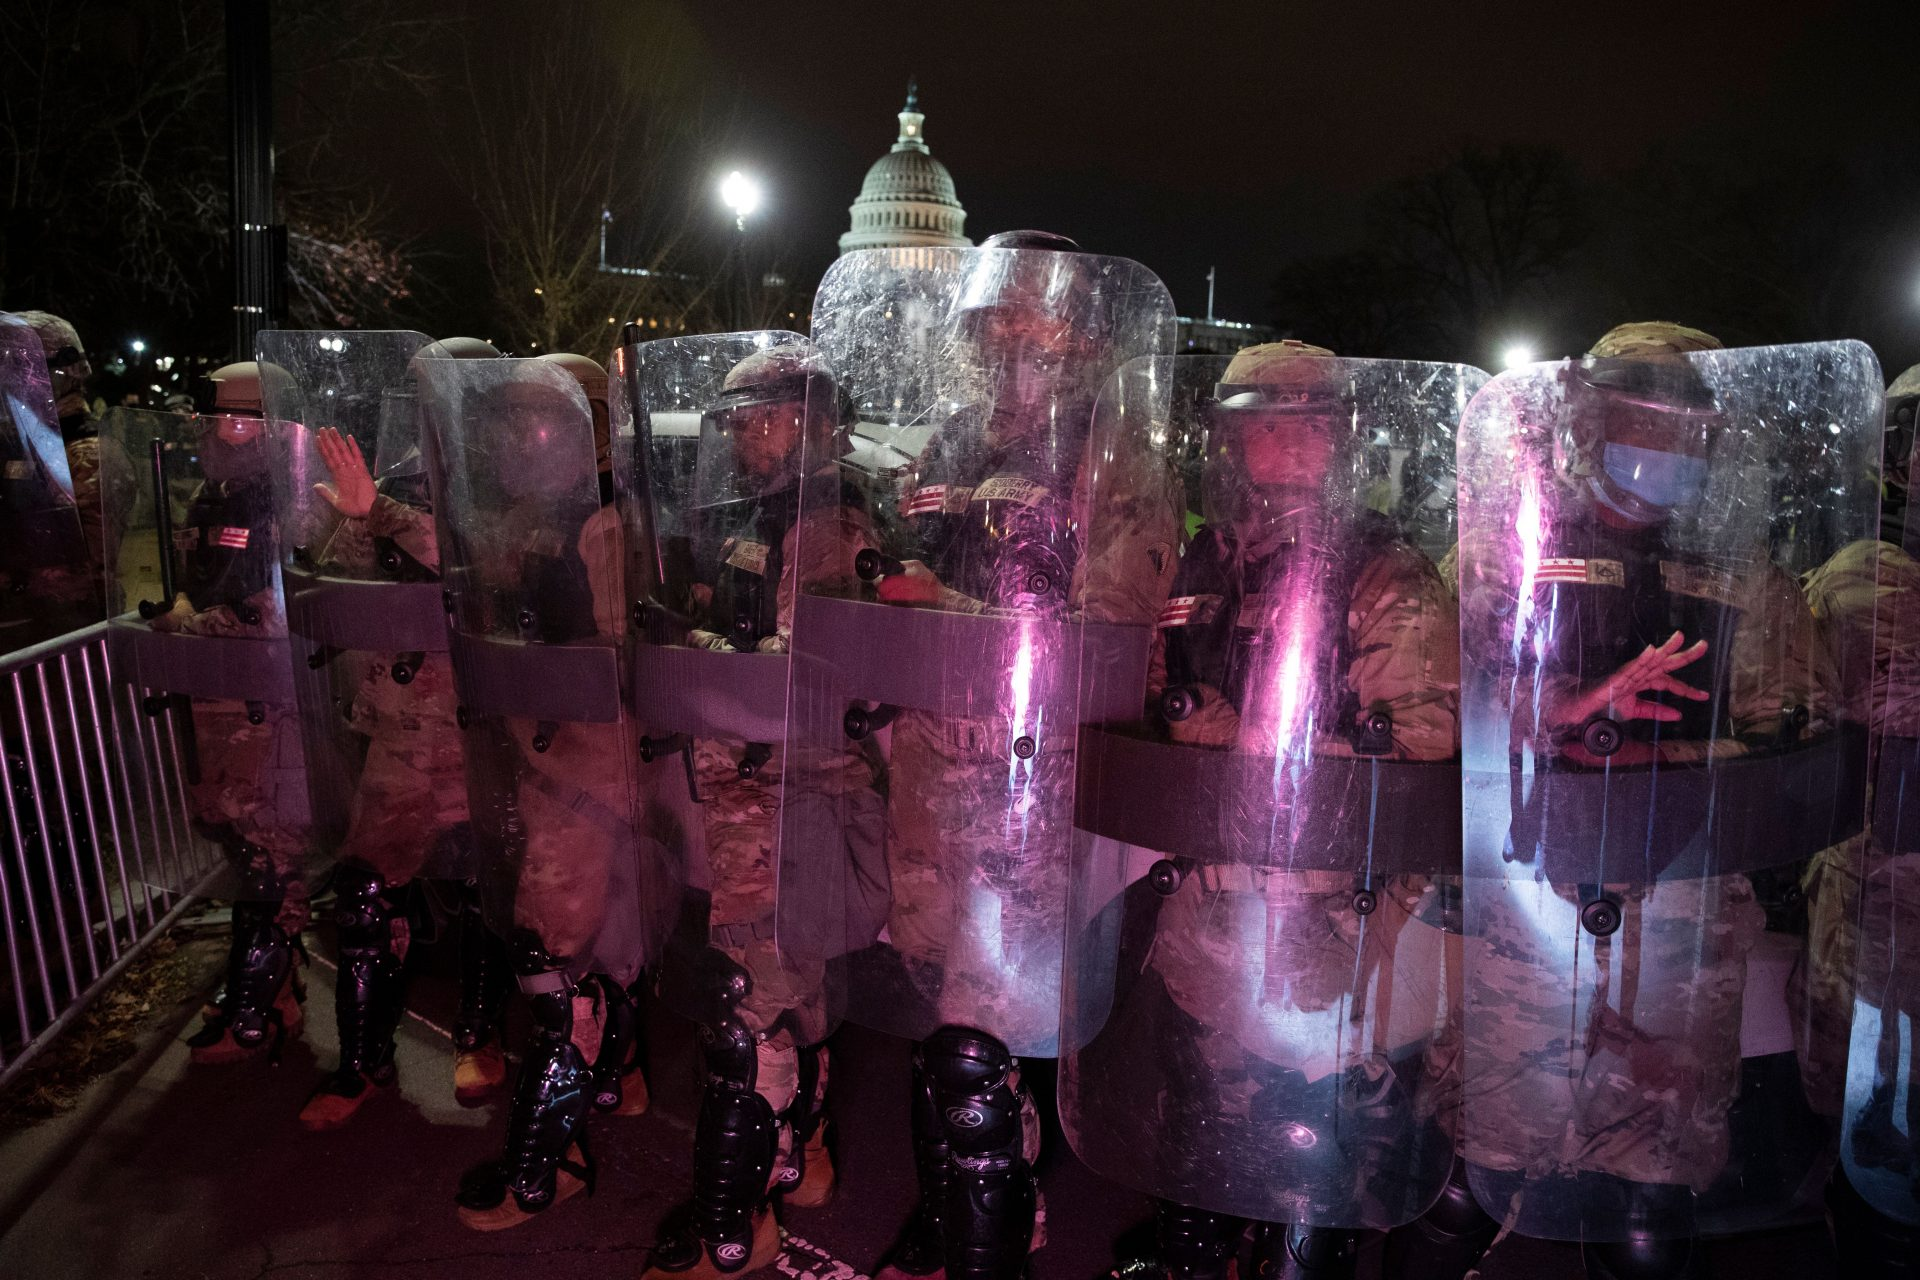 Mandatory Credit: Photo by MICHAEL REYNOLDS/EPA-EFE/Shutterstock (11695567c)DC National Guard clear an area near the West Front of the US Capitol after pro-Trump protesters stormed the grounds earlier in the day, in Washington, DC, USA, 06 January 2021.